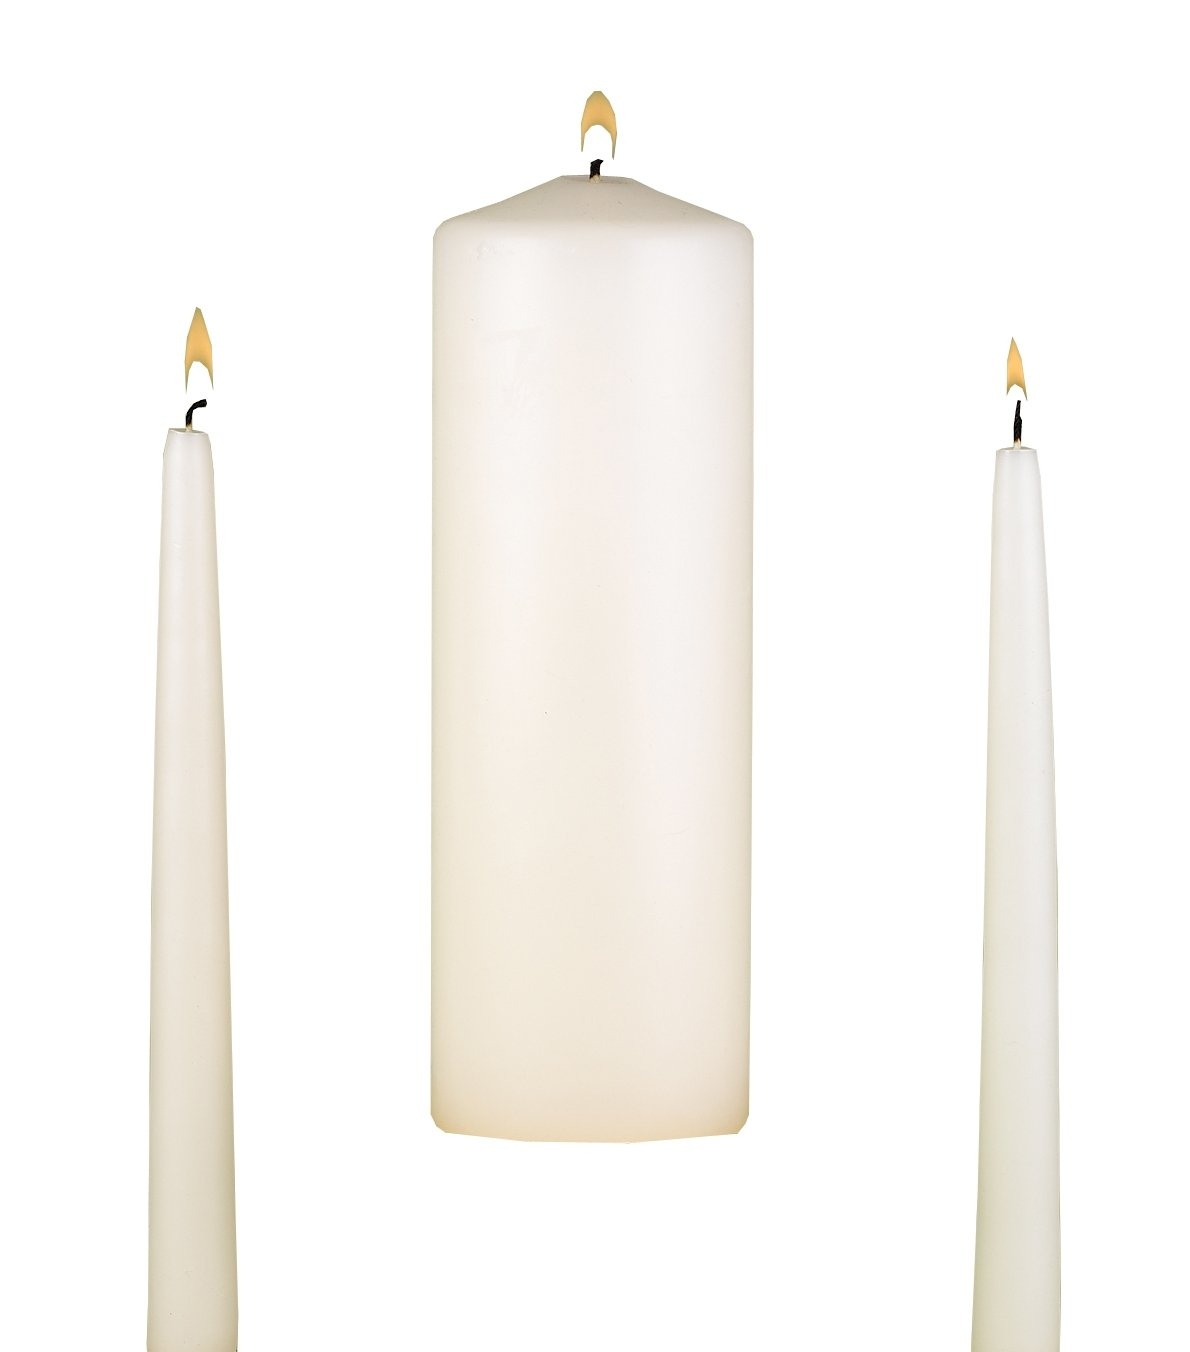 Hortense B 95095 Hewitt Wedding Accessories, Unity Candle Set, Ivory, 9-Inch Pillar and 2 10-Inch Tapers